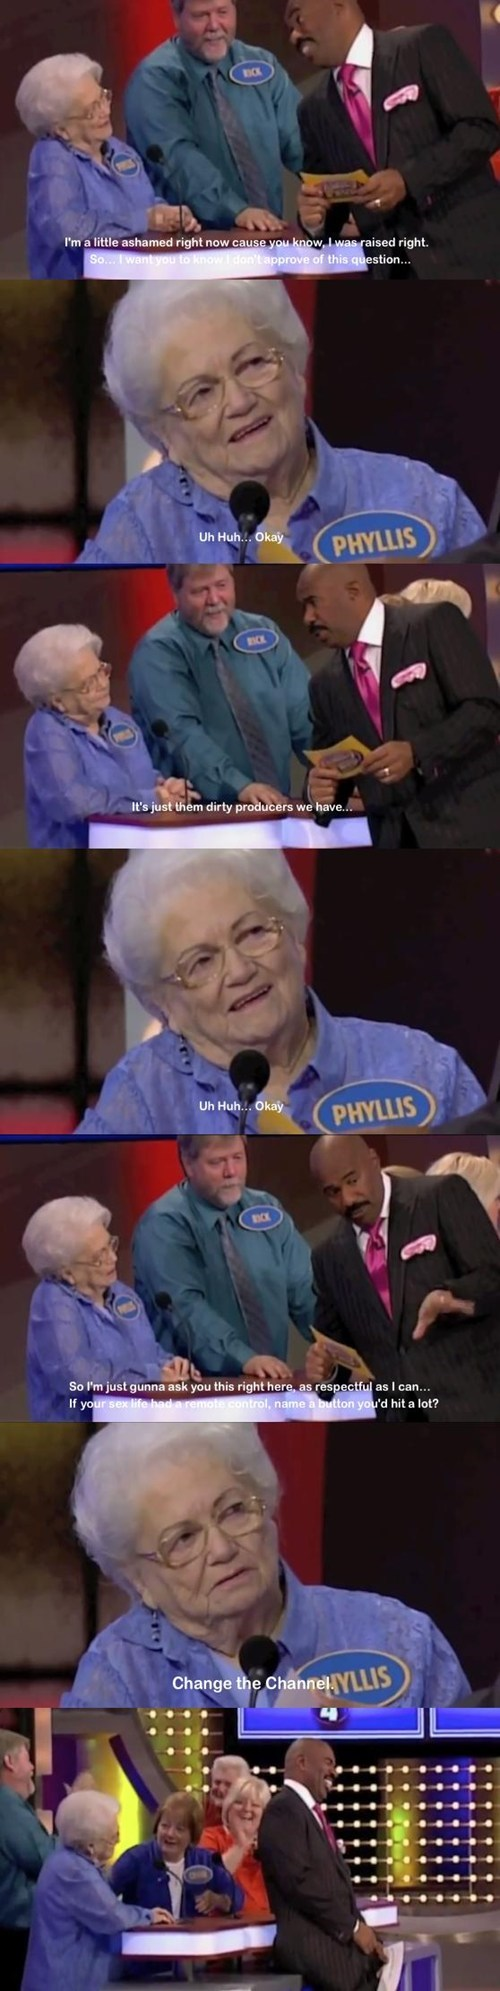 game show seniors old people rock cute